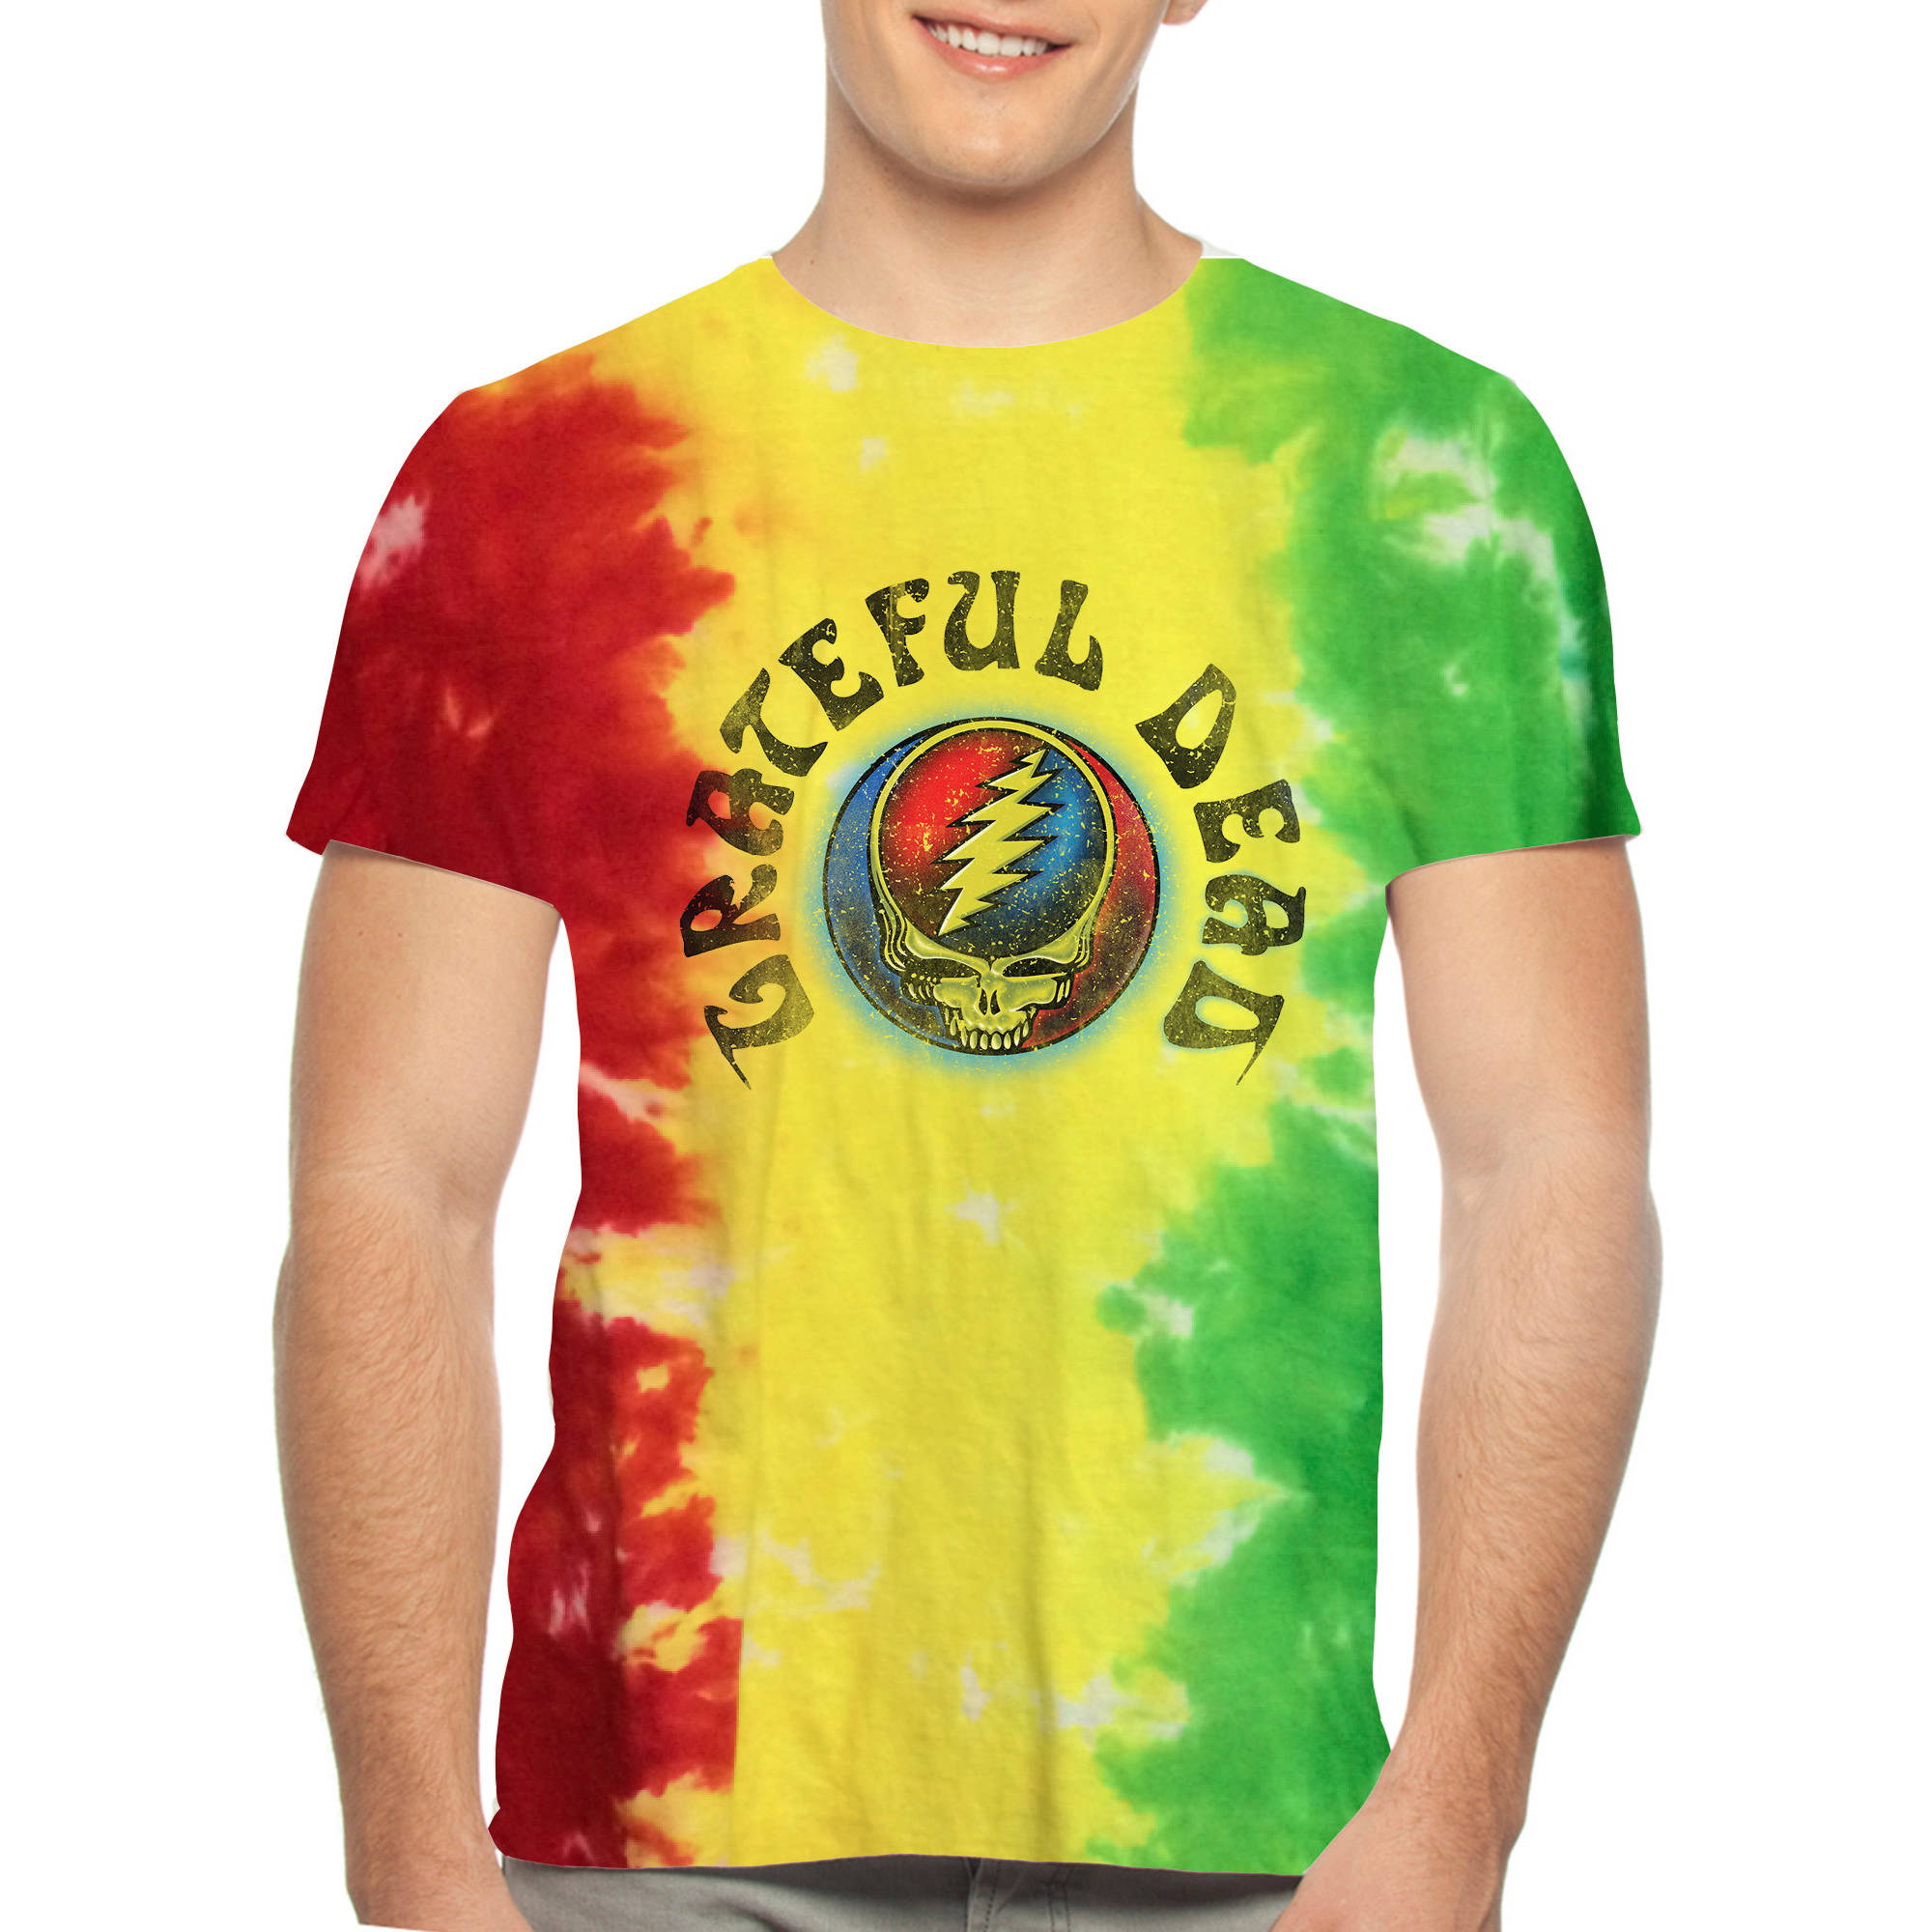 Grateful Dead Men's Tie Dye Graphic Tee